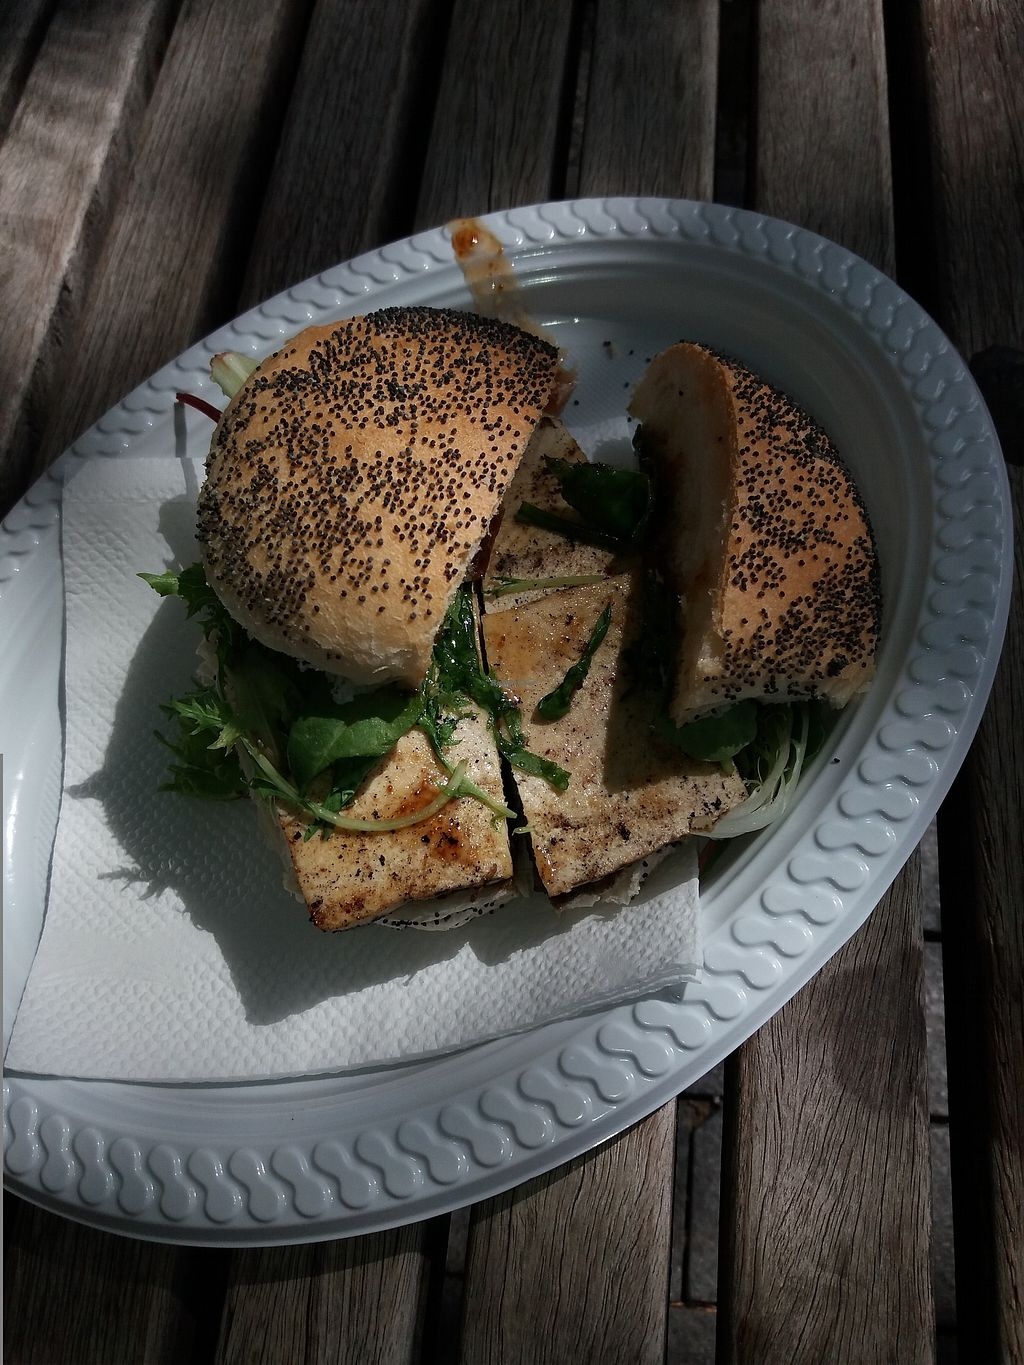 """Photo of Vejoes - Food Truck  by <a href=""""/members/profile/veganvirtues"""">veganvirtues</a> <br/>Smoked tofu and smoked mushroom burger <br/> March 20, 2018  - <a href='/contact/abuse/image/71609/373162'>Report</a>"""